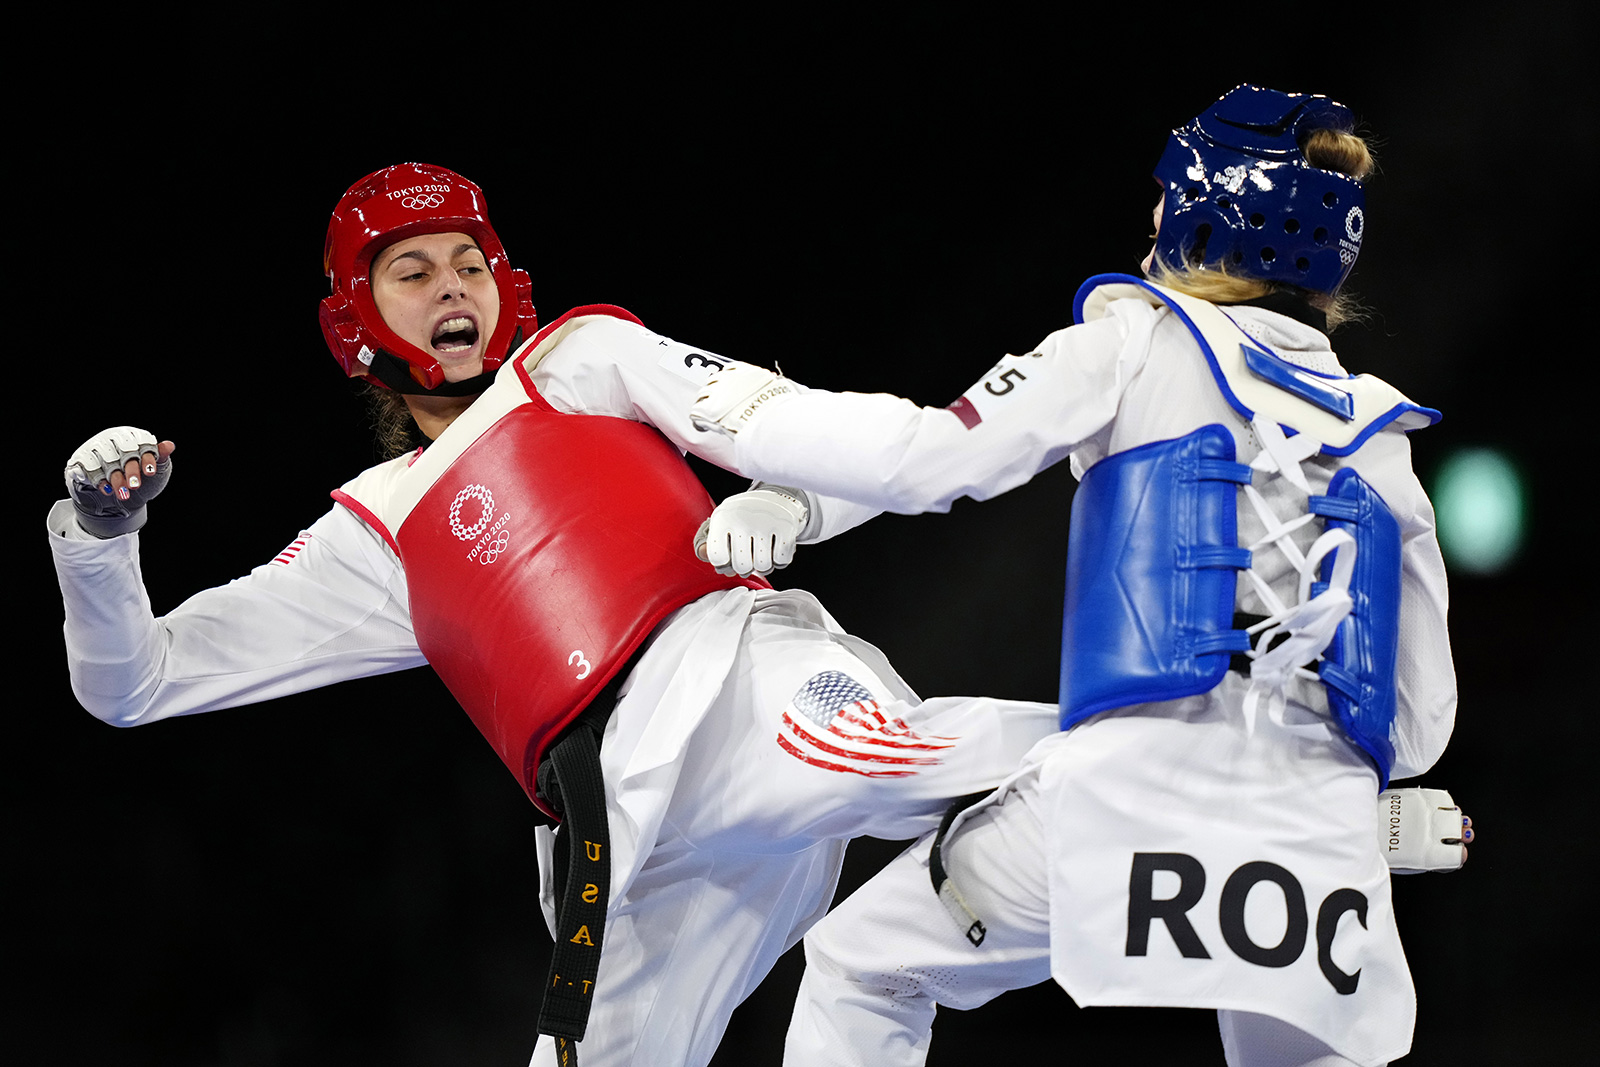 Anastasija Zolotic of the United States competes in a Taekwondo contest against Tatiana Manina of the Russian Olympic Committee on July 25.